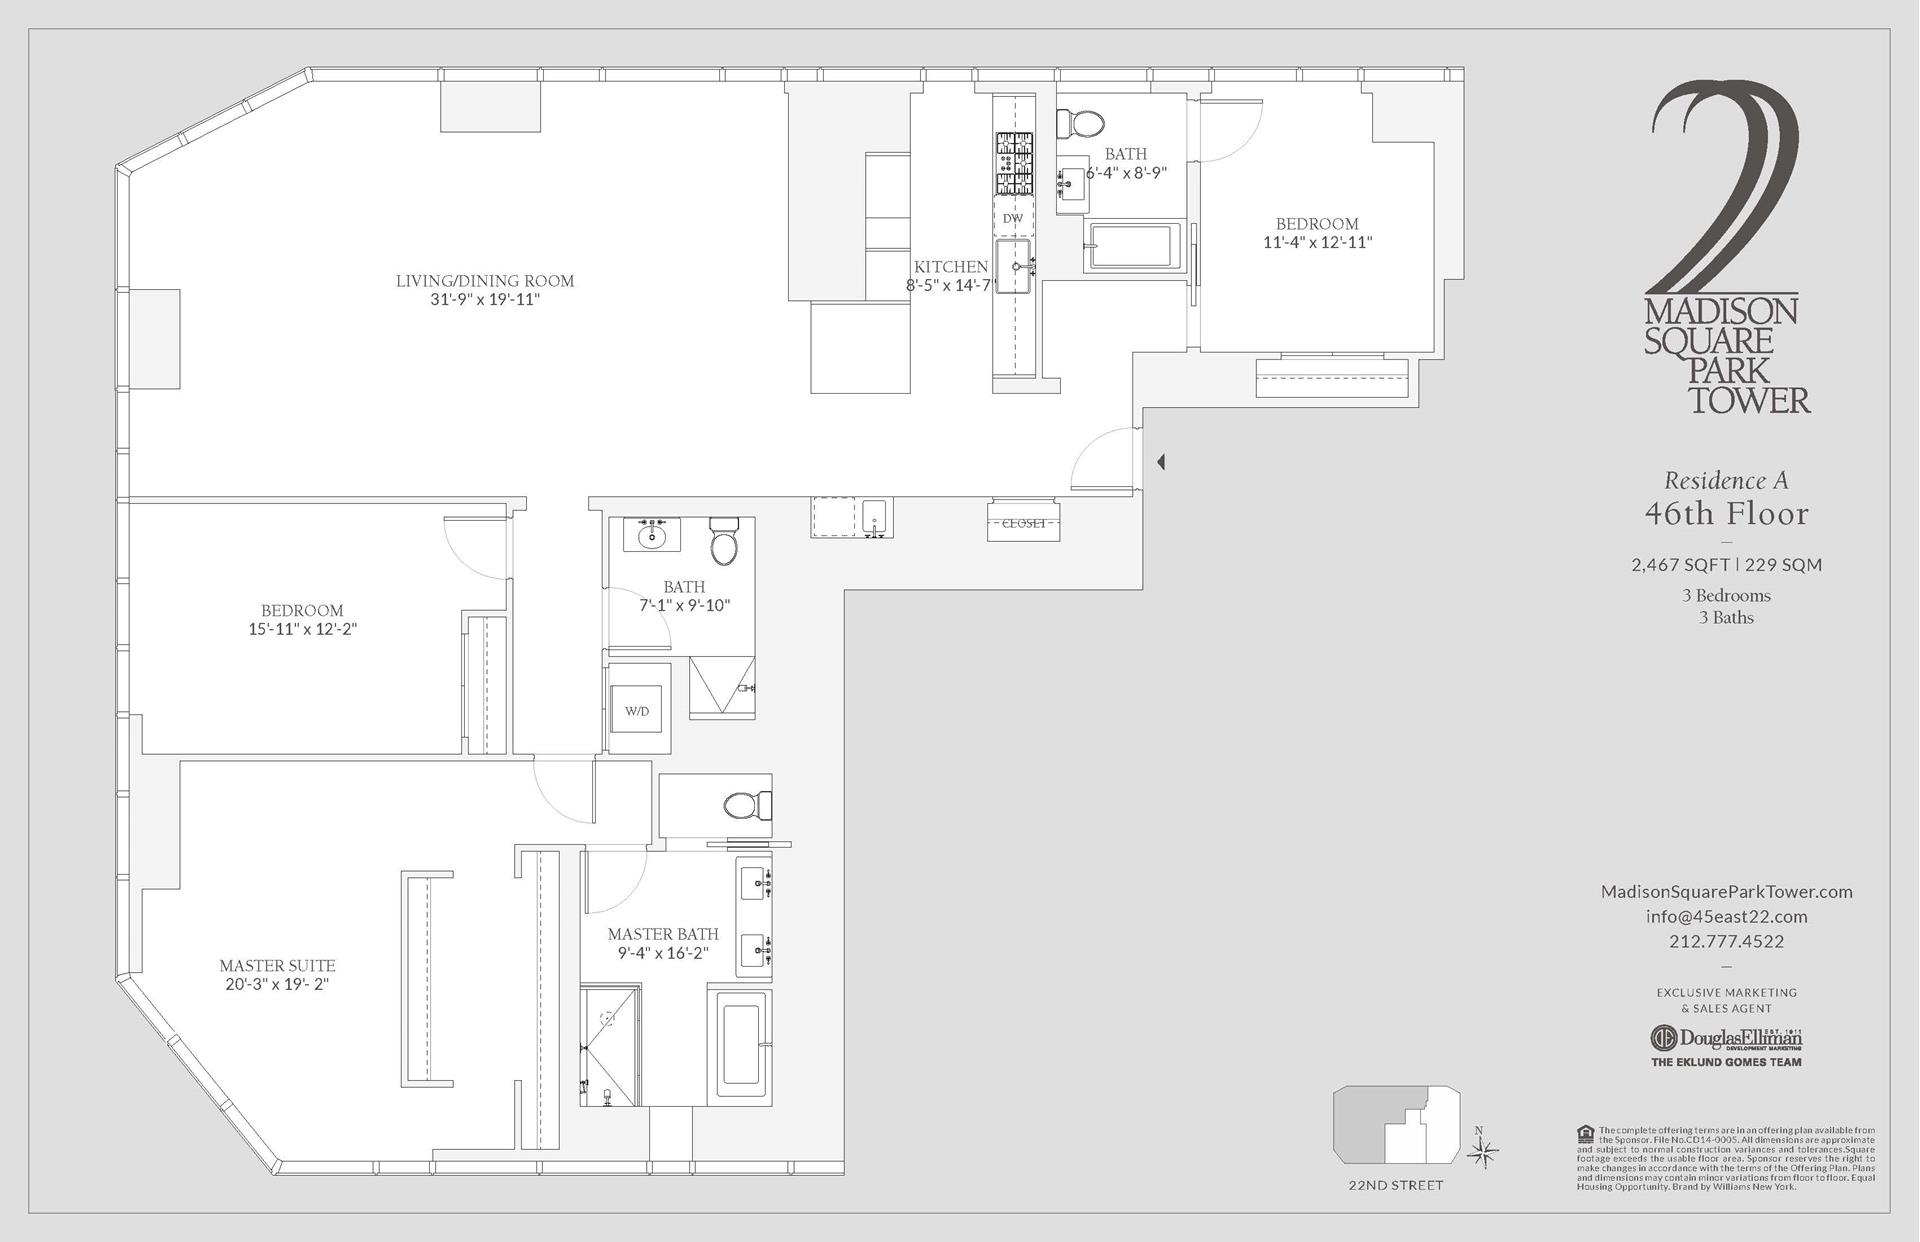 Floor plan of Madison Square Park Tower, 45 East 22nd St, 46A - Flatiron District, New York